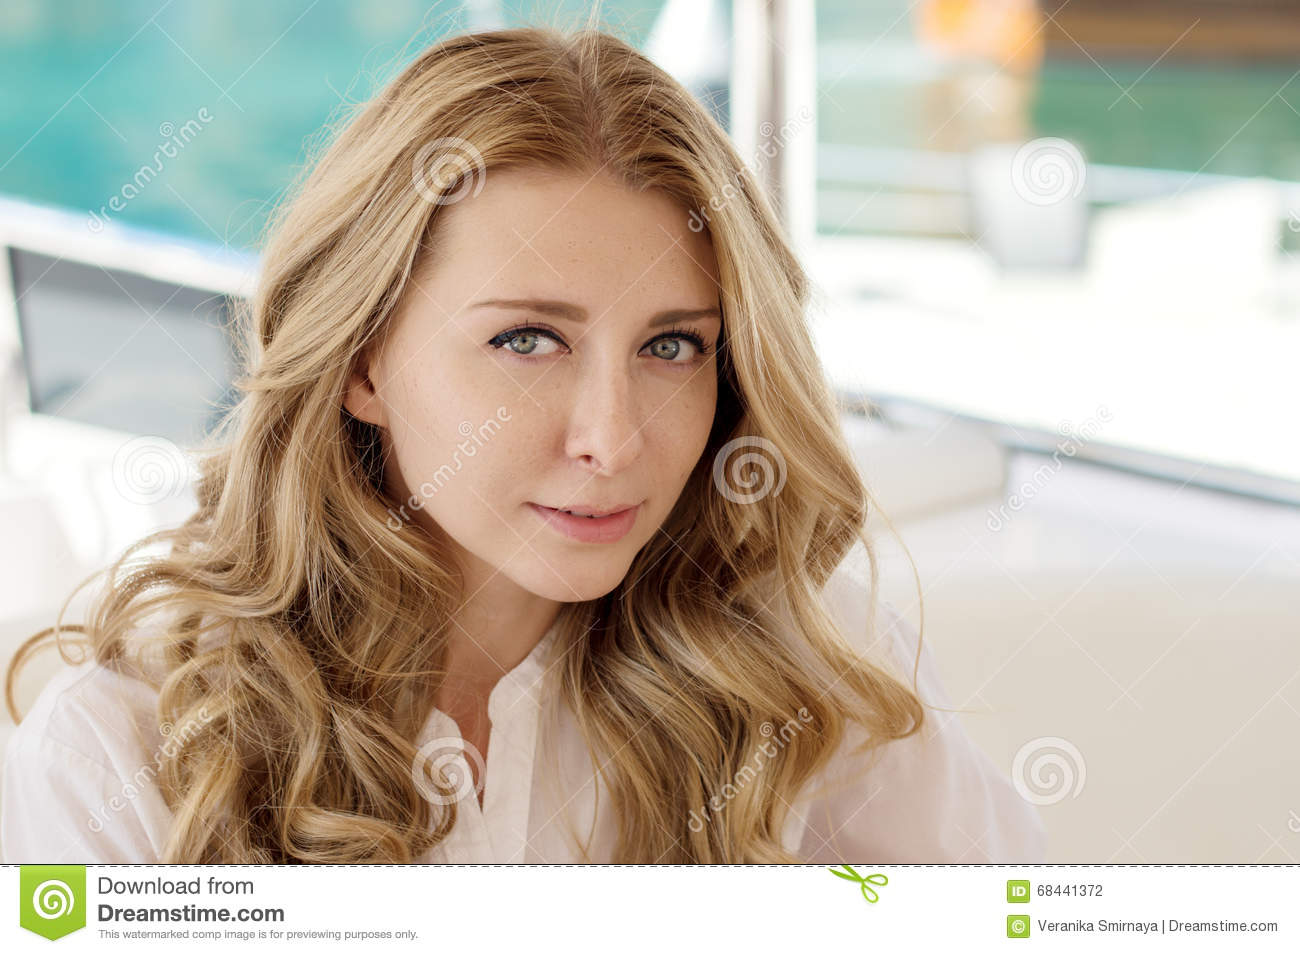 Women Blonde Blue Eyes Long Hair Wavy Hair Portrait: Horizontal Portrait Of A Young Blond Woman With Long Curly